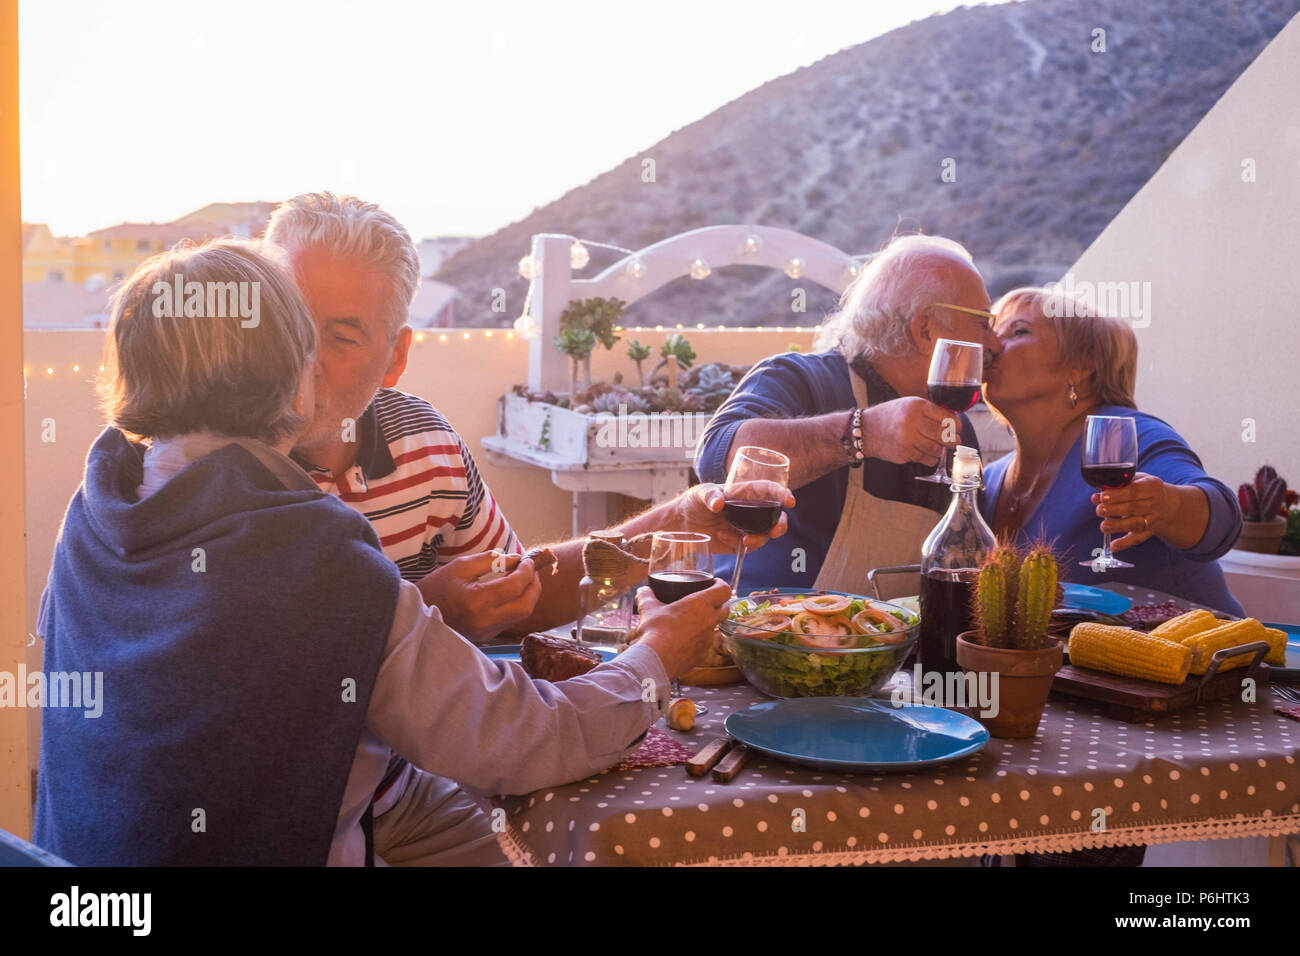 nice group of caucasian adult people in happiness staying together for dinner outdoor in the terrace. love and friendship concept with amazing view. v - Stock Image